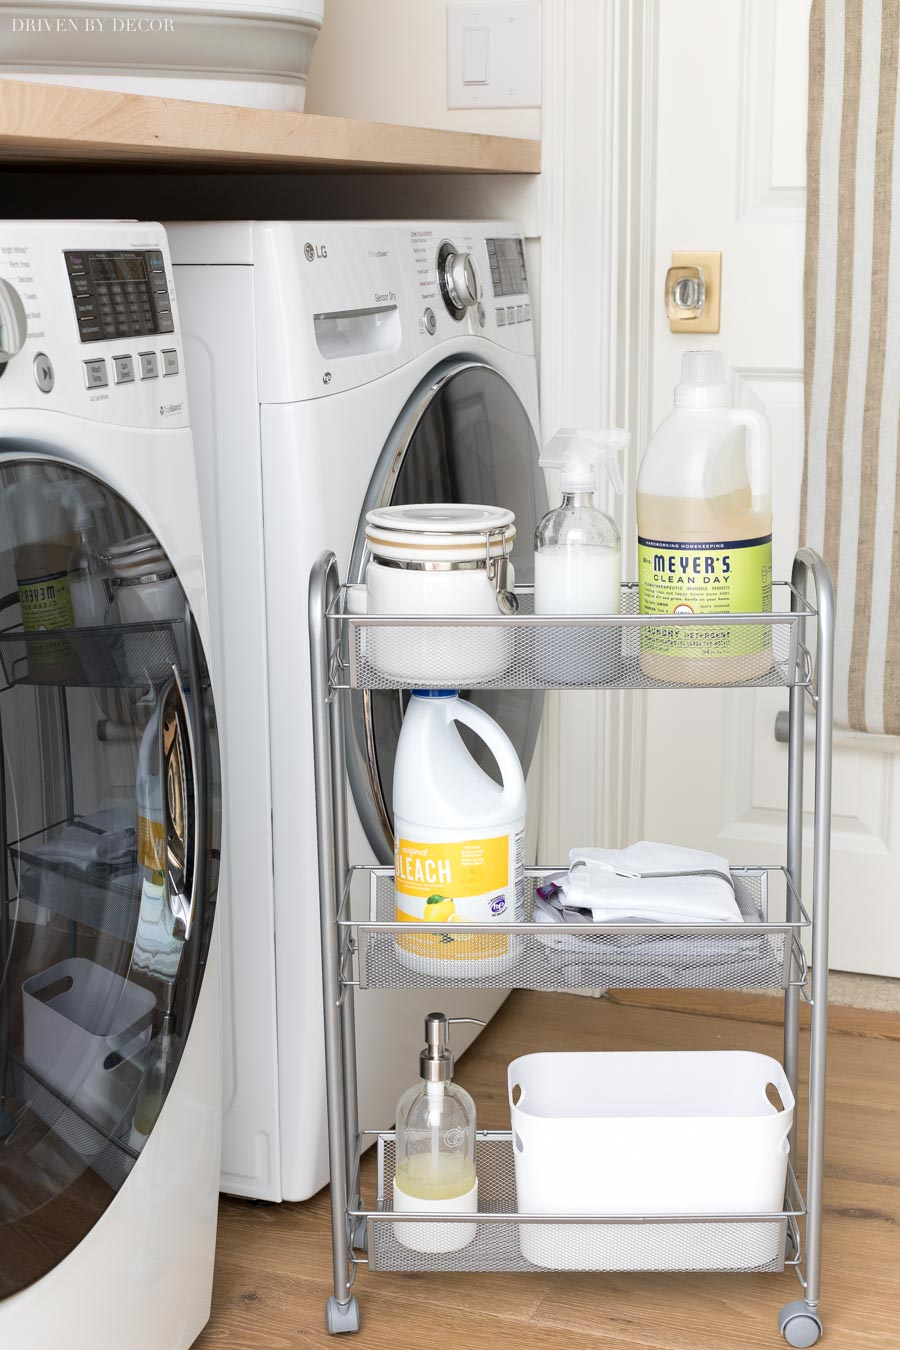 My Six Best Laundry Room Storage Ideas Driven By Decor